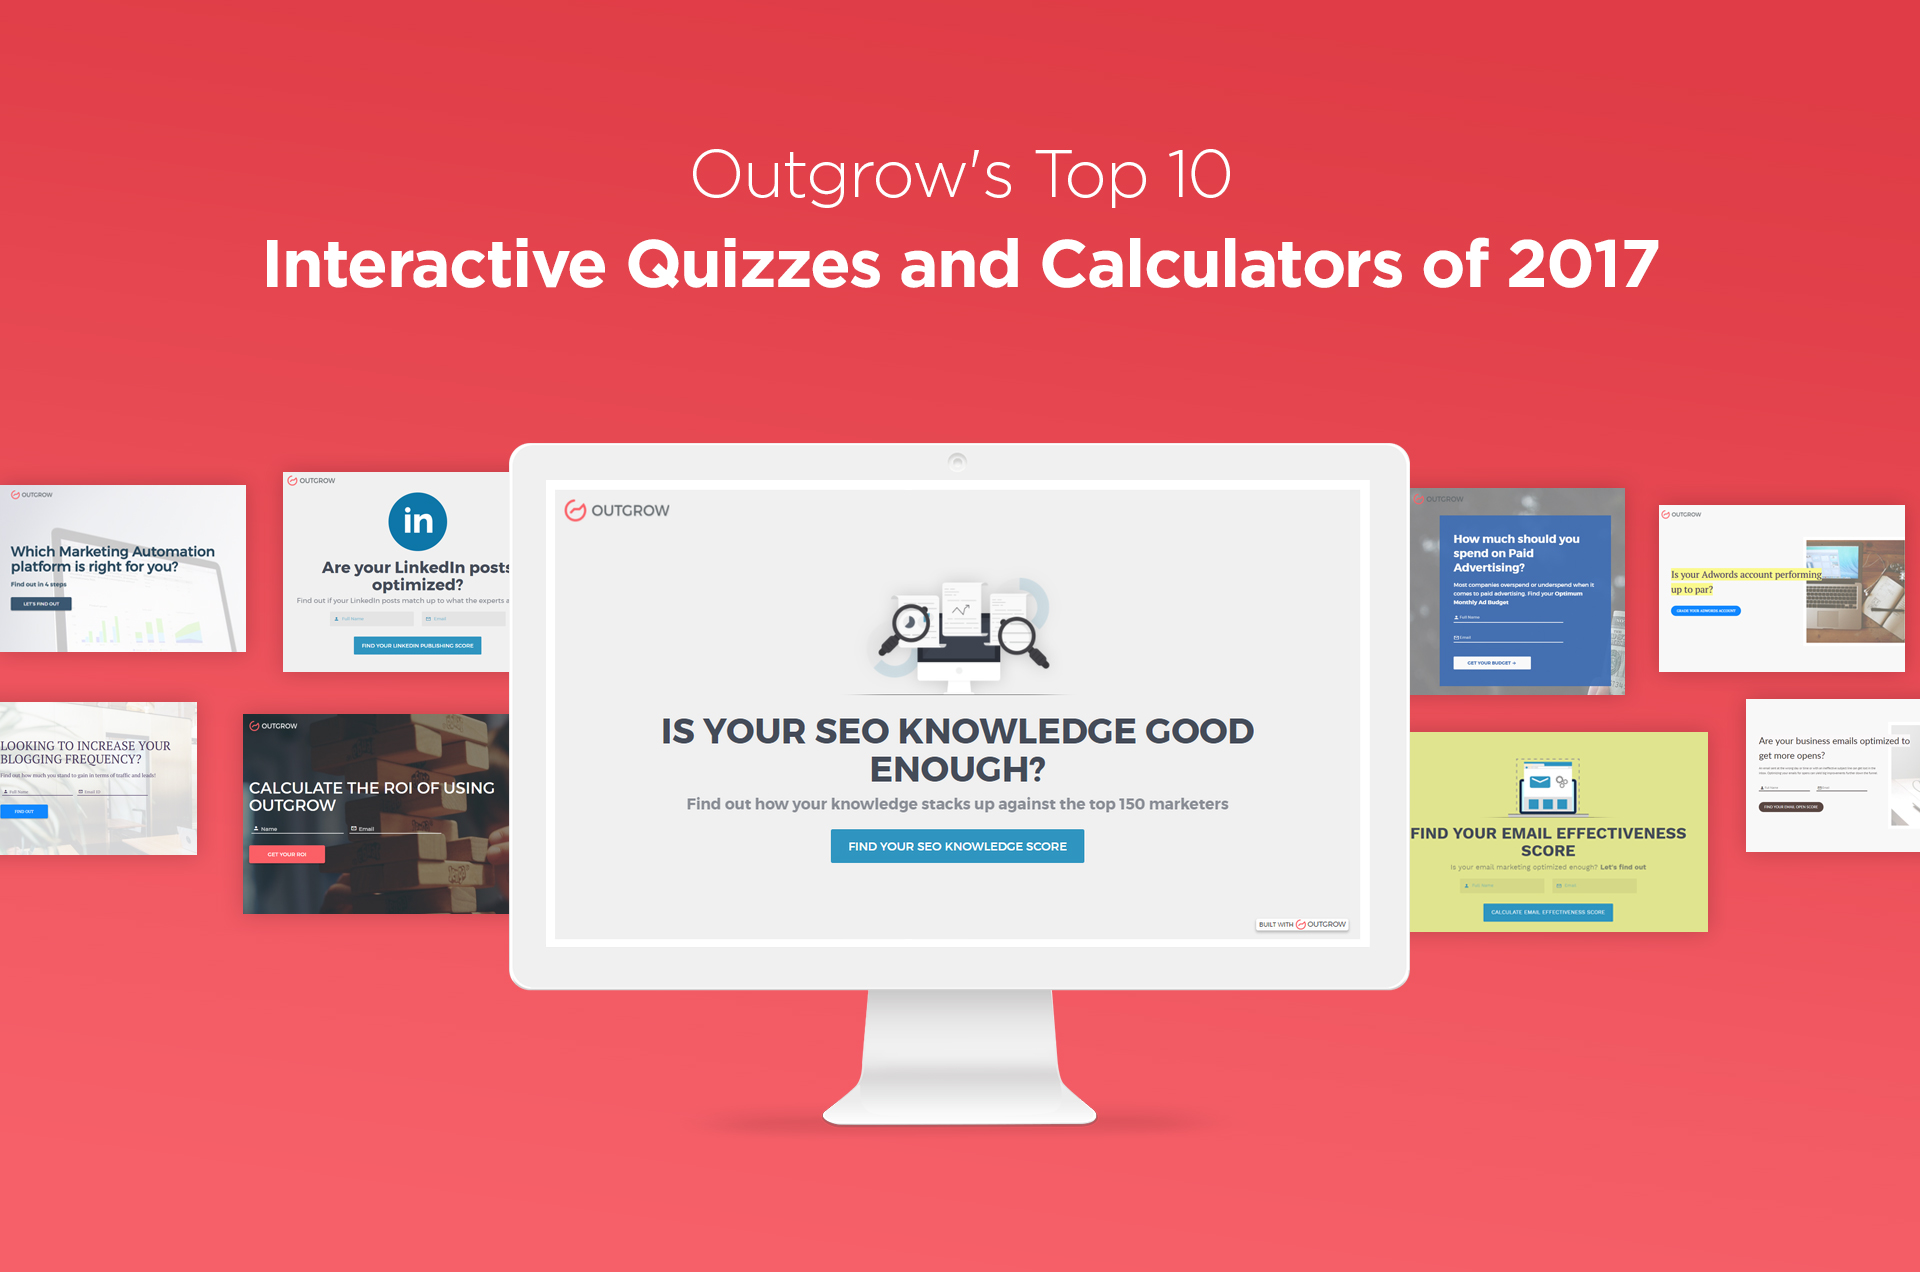 Outgrow's Top 10 Interactive Quizzes and Calculators of 2017